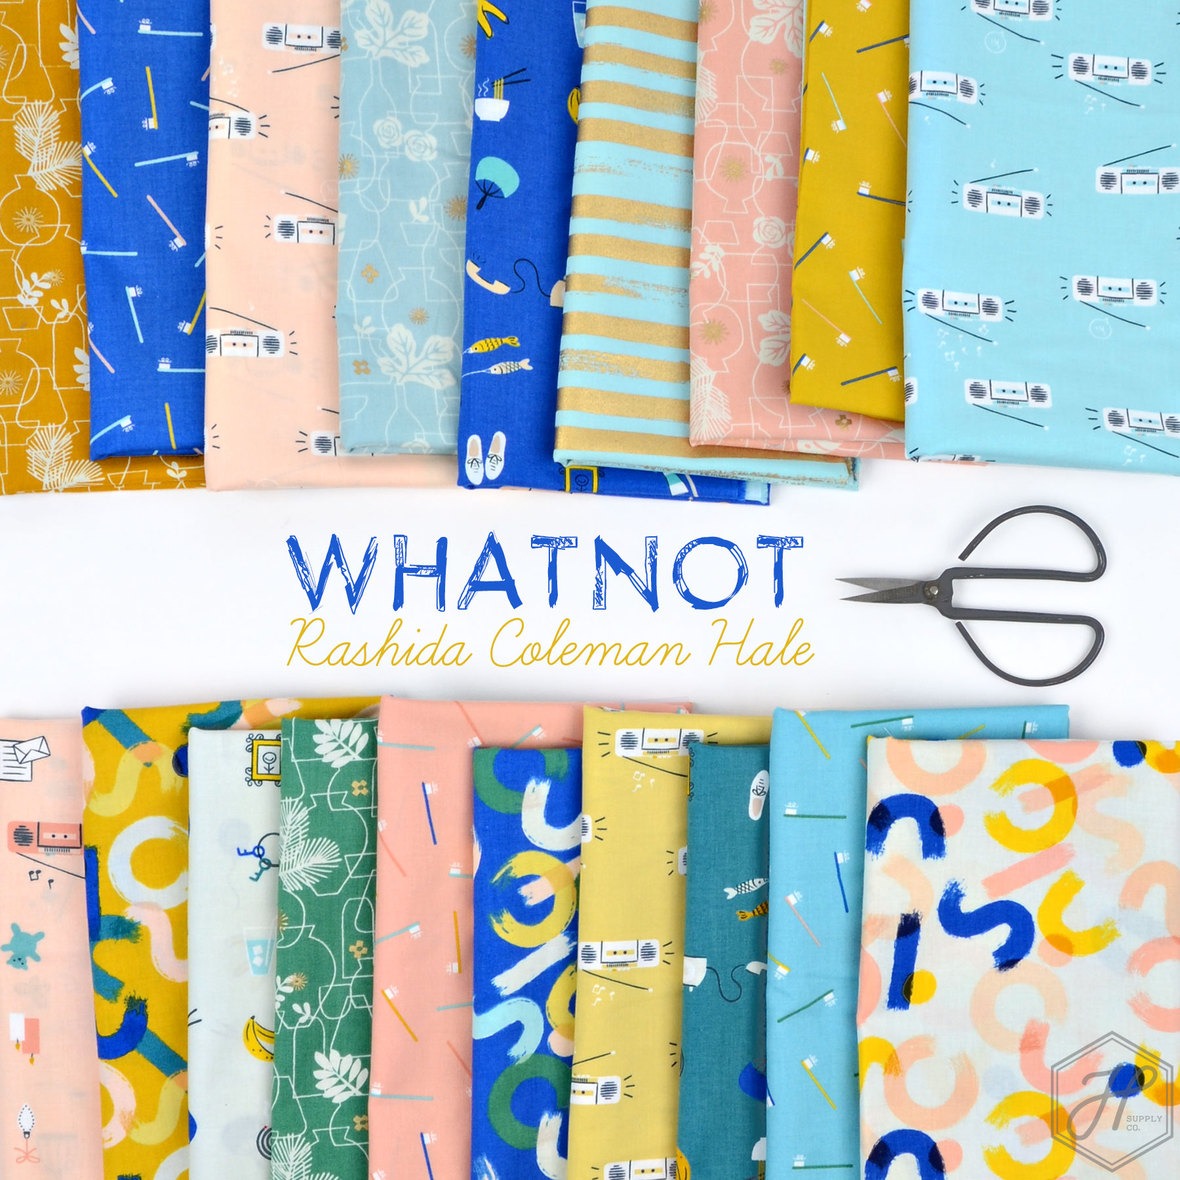 Whatnot-Fabric-Rashina-Coleman-Hale-for-Ruby-Star-at-Hawthorne-Supply-Co